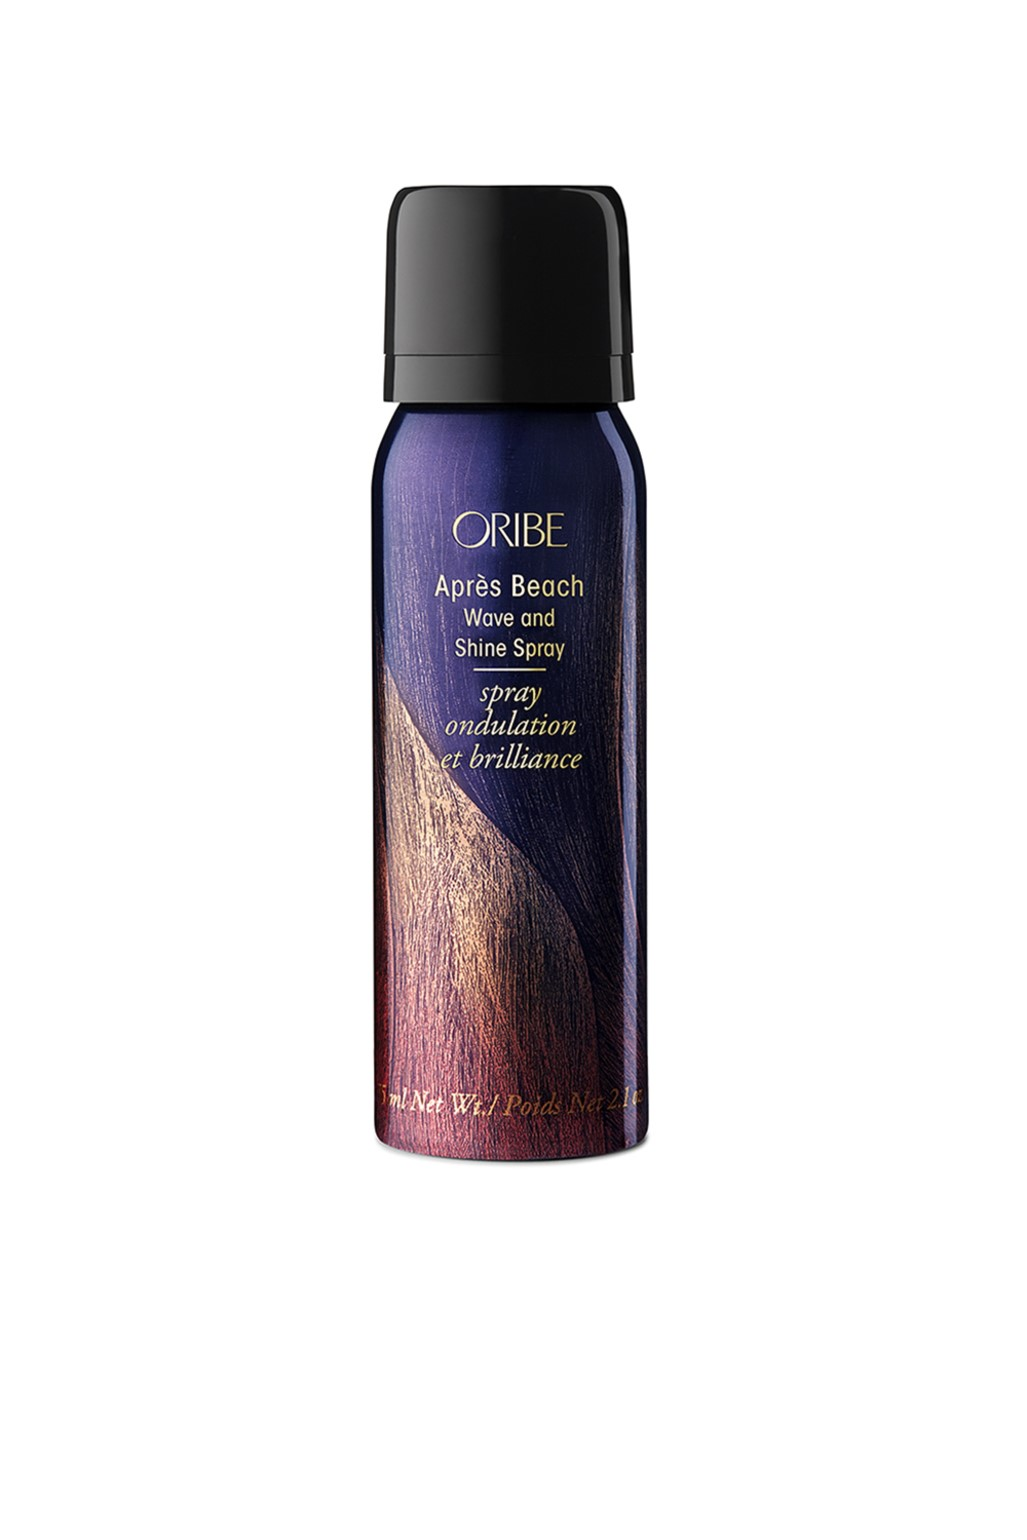 Après Beach Wave and Shine Spray – Travel